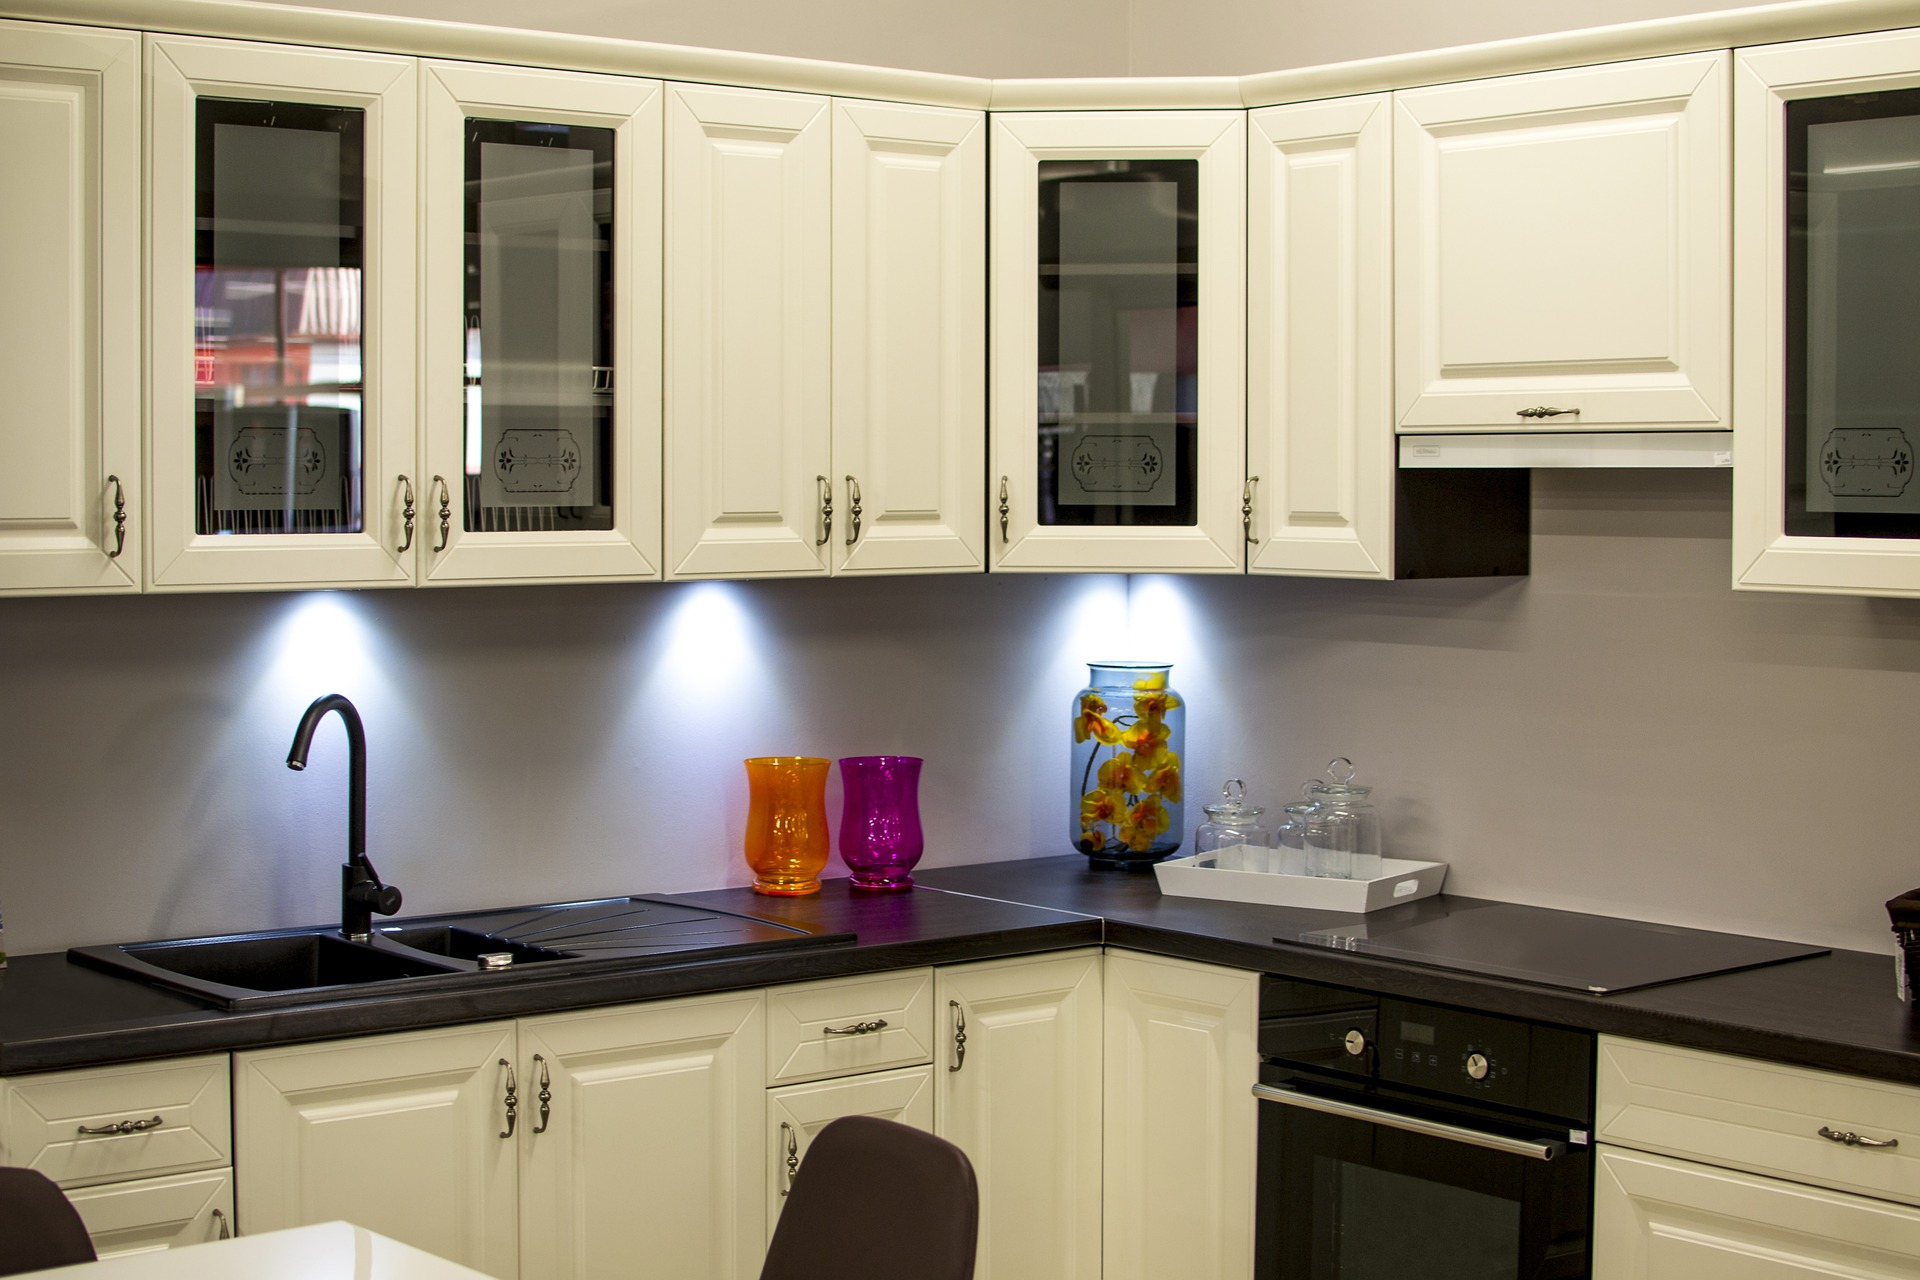 6 Things You Should Know Before Painting Your Kitchen Cabinets